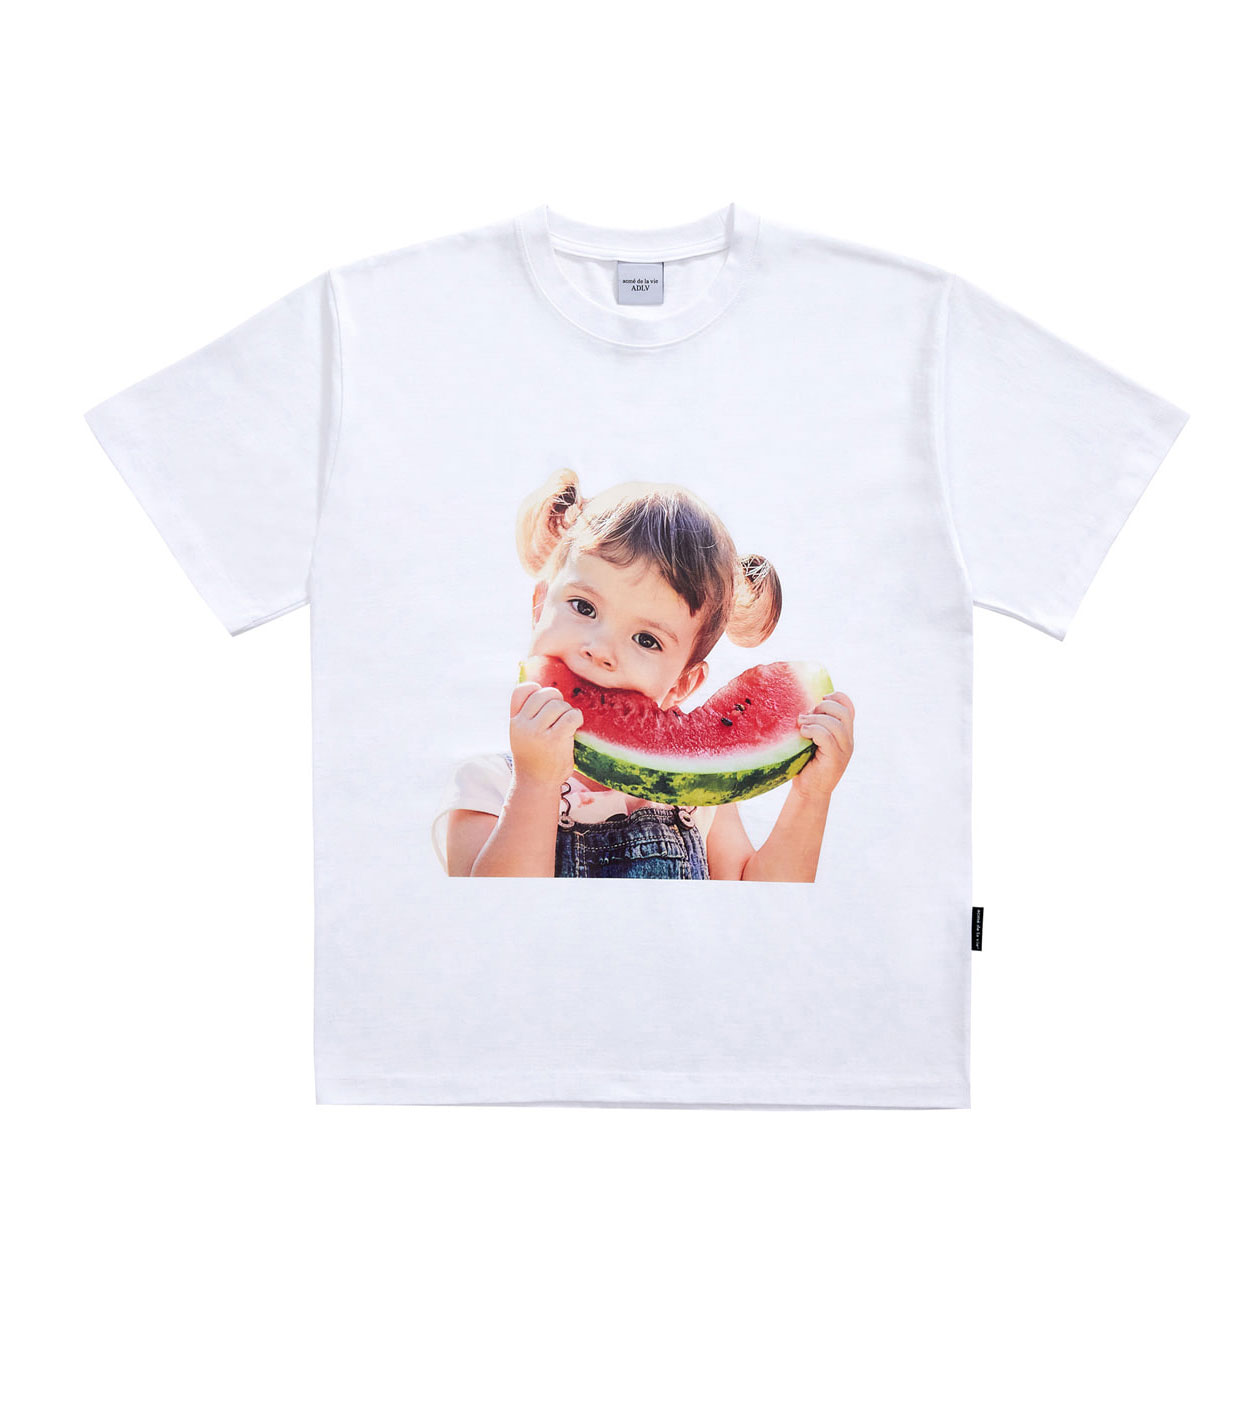 ADLV BABY FACE SHORT SLEEVE T-SHIRT WHITE WATERMELON